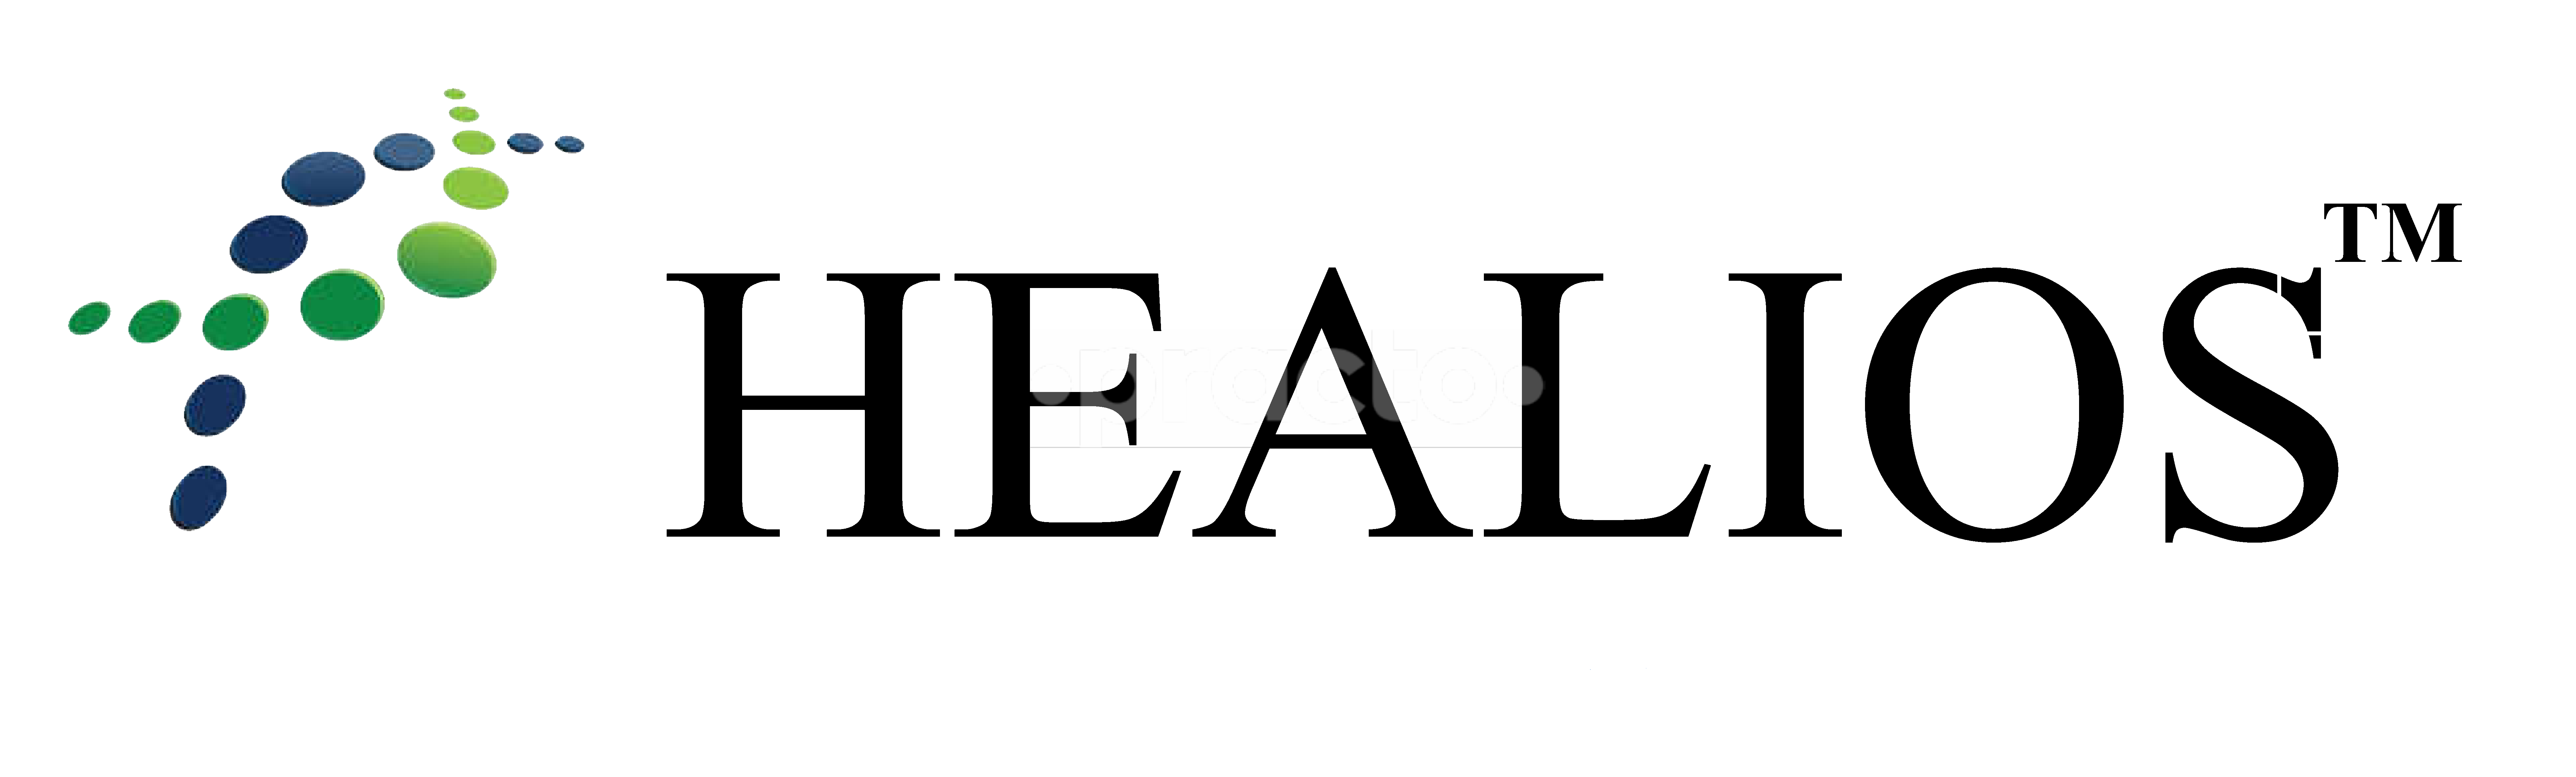 Healios Clinic - General Surgery, Podiatry, Wound Care